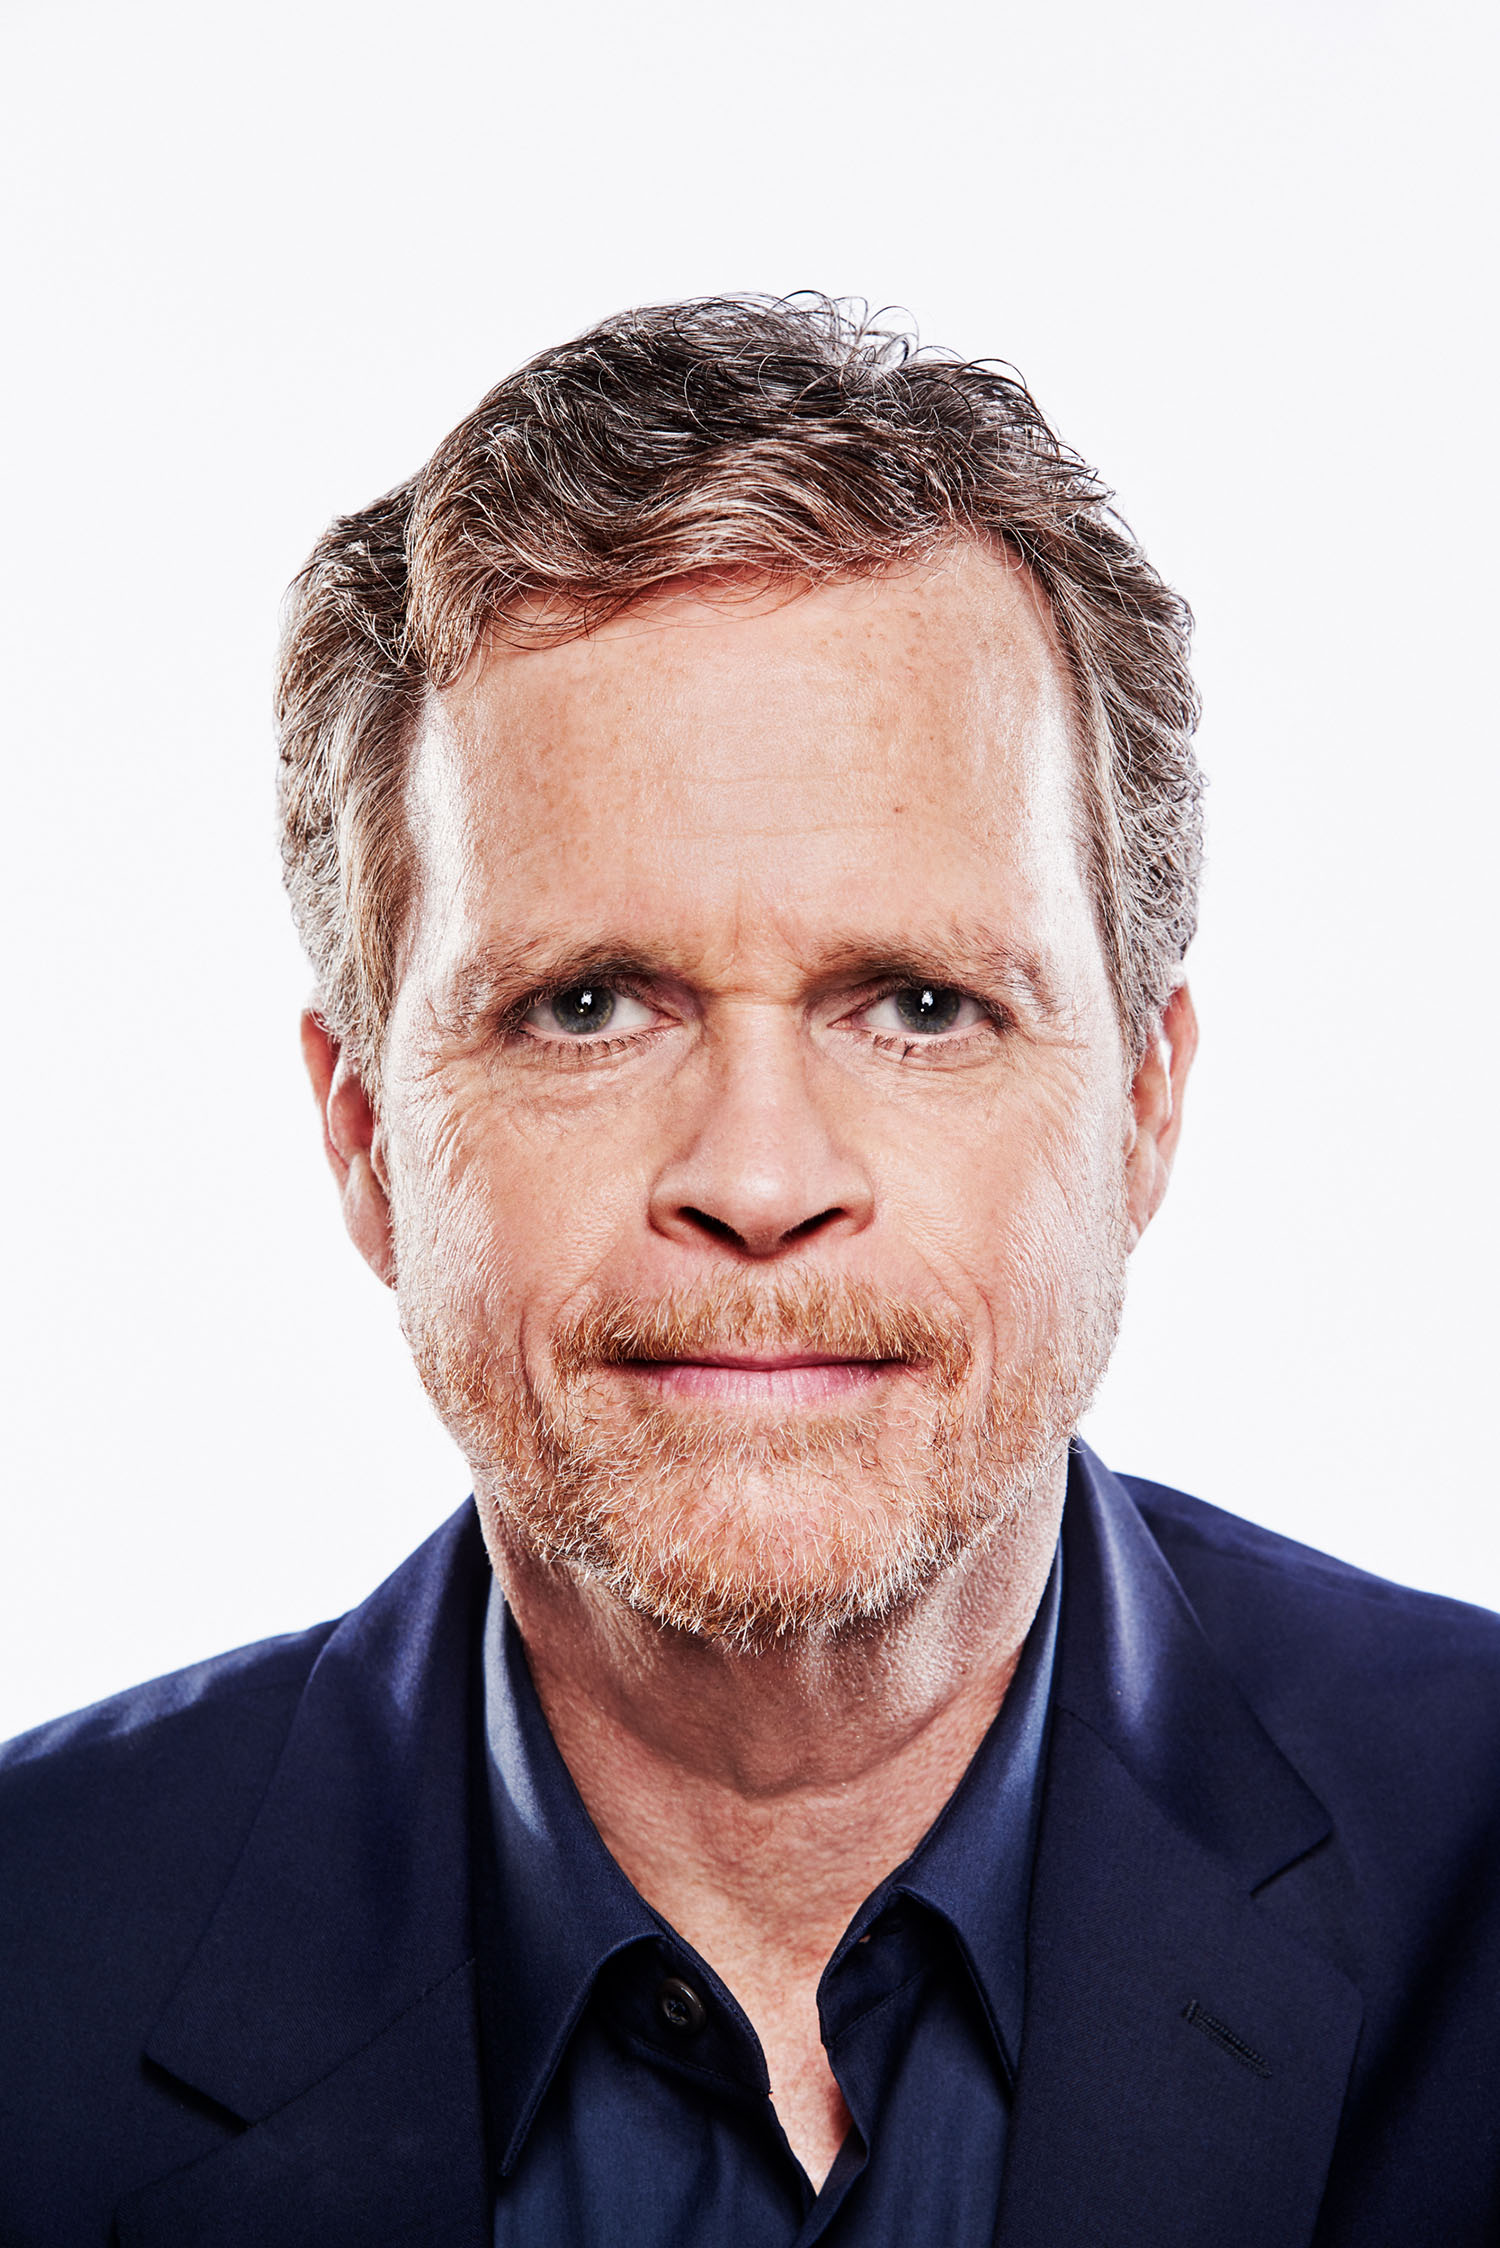 Mark Parker, CEO of Nike, Beaverton, Oregon, 2015